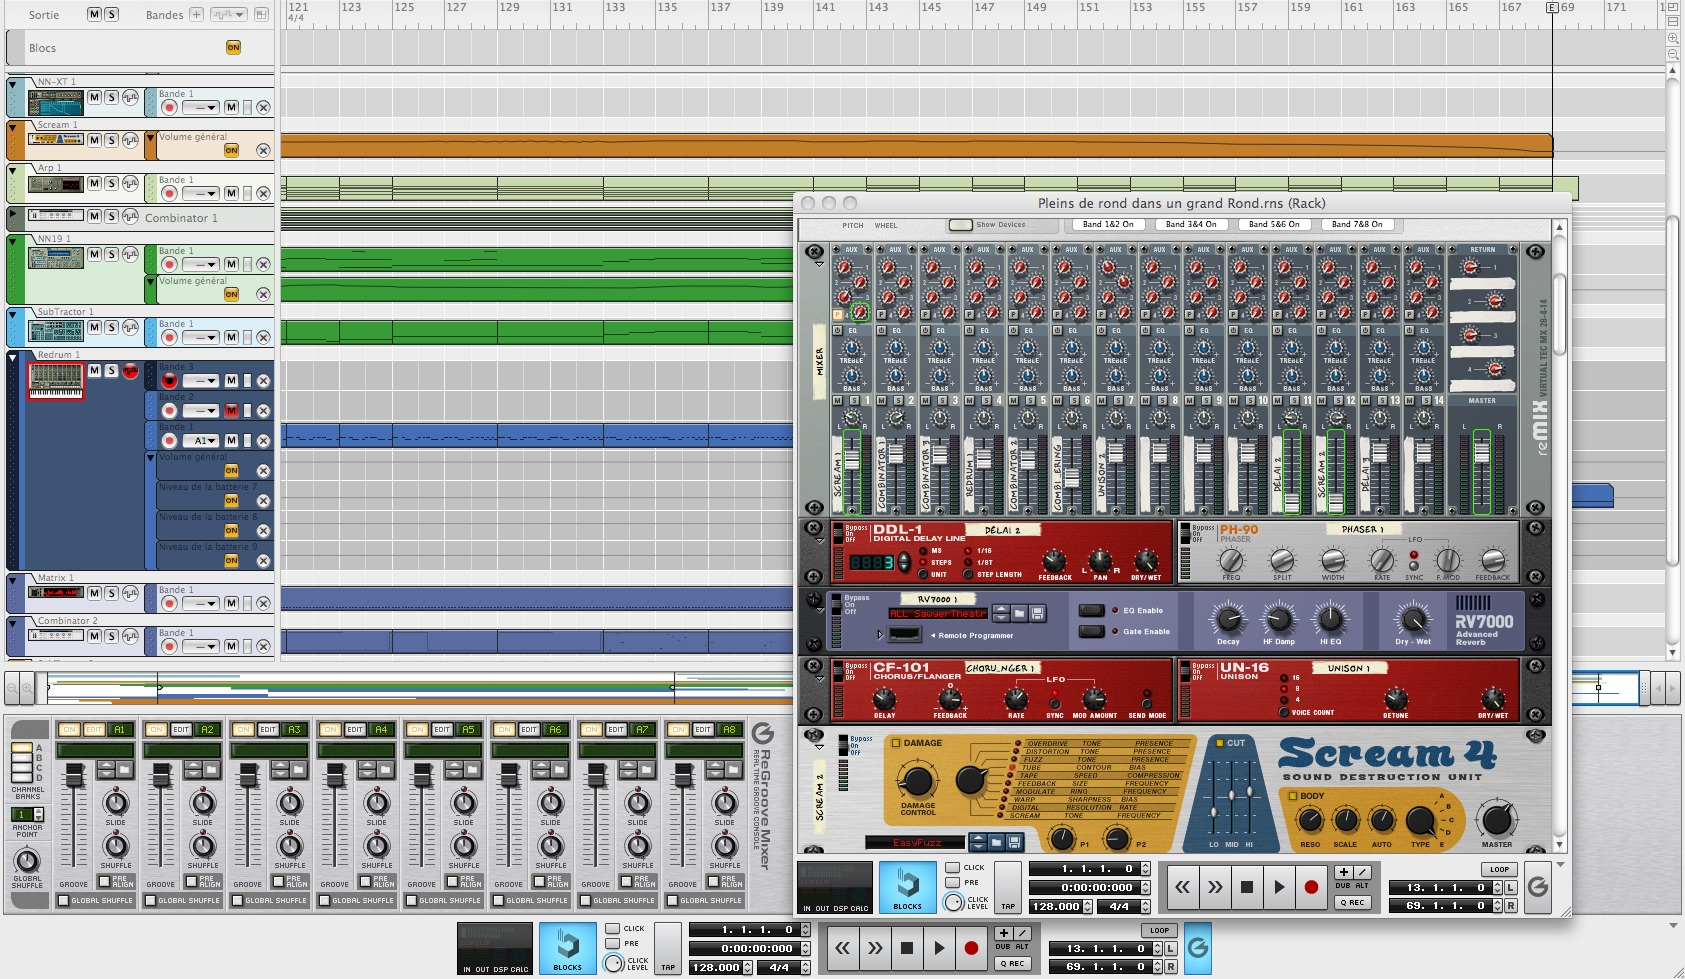 Reason 4, Electronic Music Sequencer from PropellerHead in the Reason ...